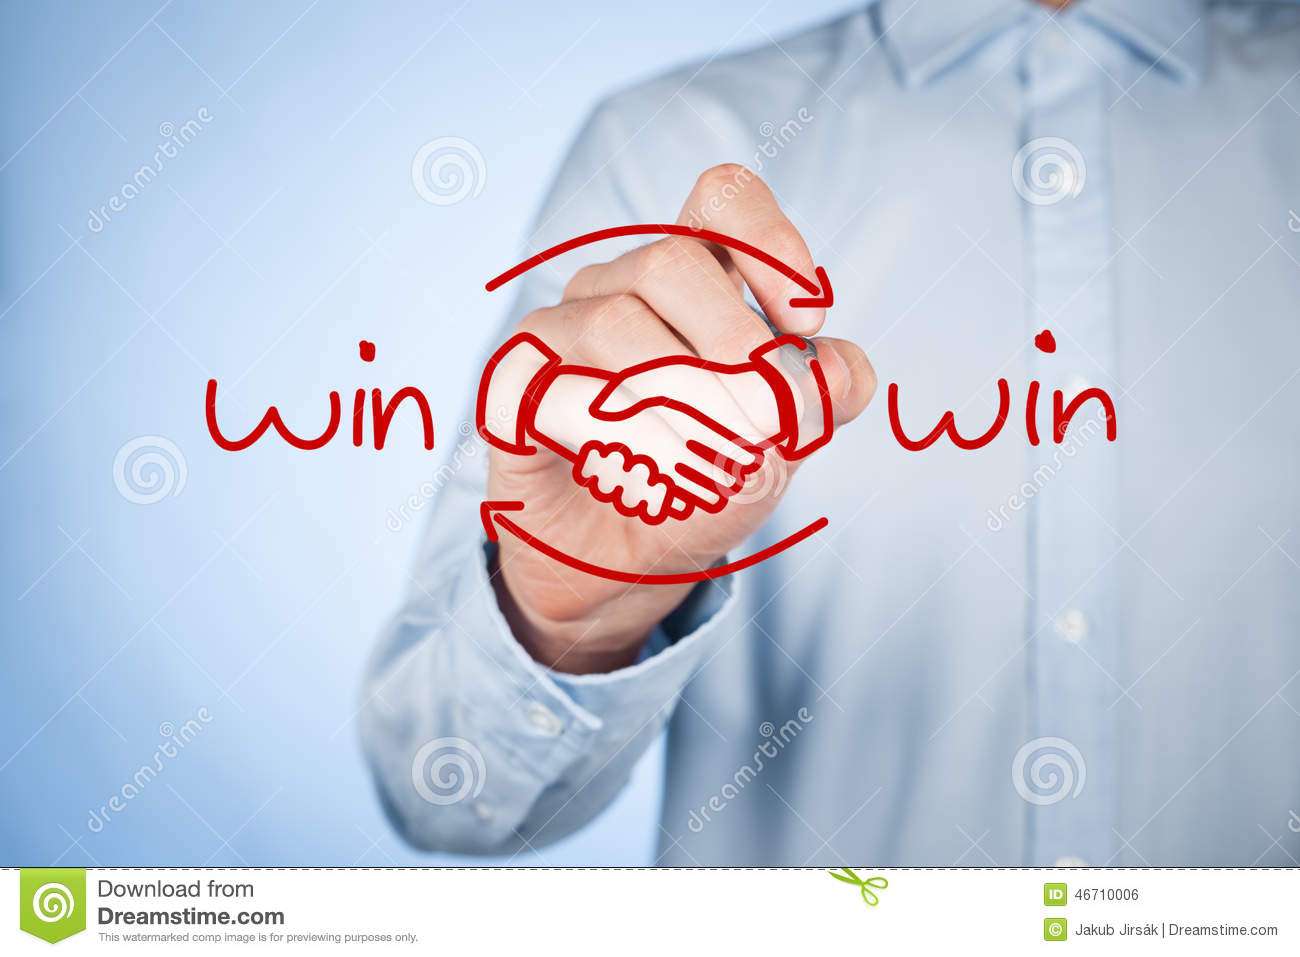 Win Win Strategy Stock Photo Image 46710006